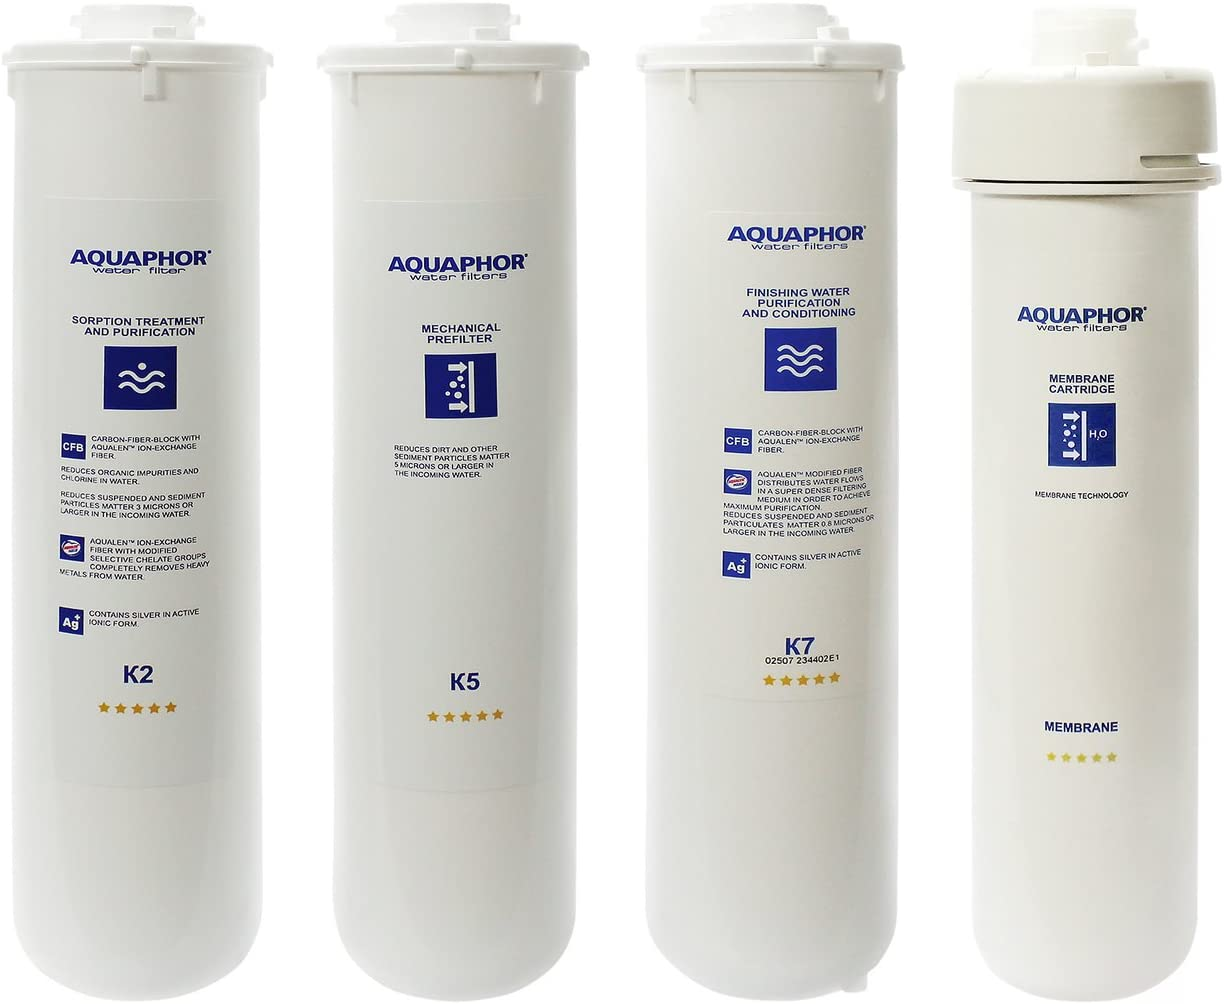 Full Set of 4 Replacement Water Filters Cartridges for Aquaphor RO-101 Reverse Osmosis System with Remineralizer K2 K5 K7 RO - 18-24 Month